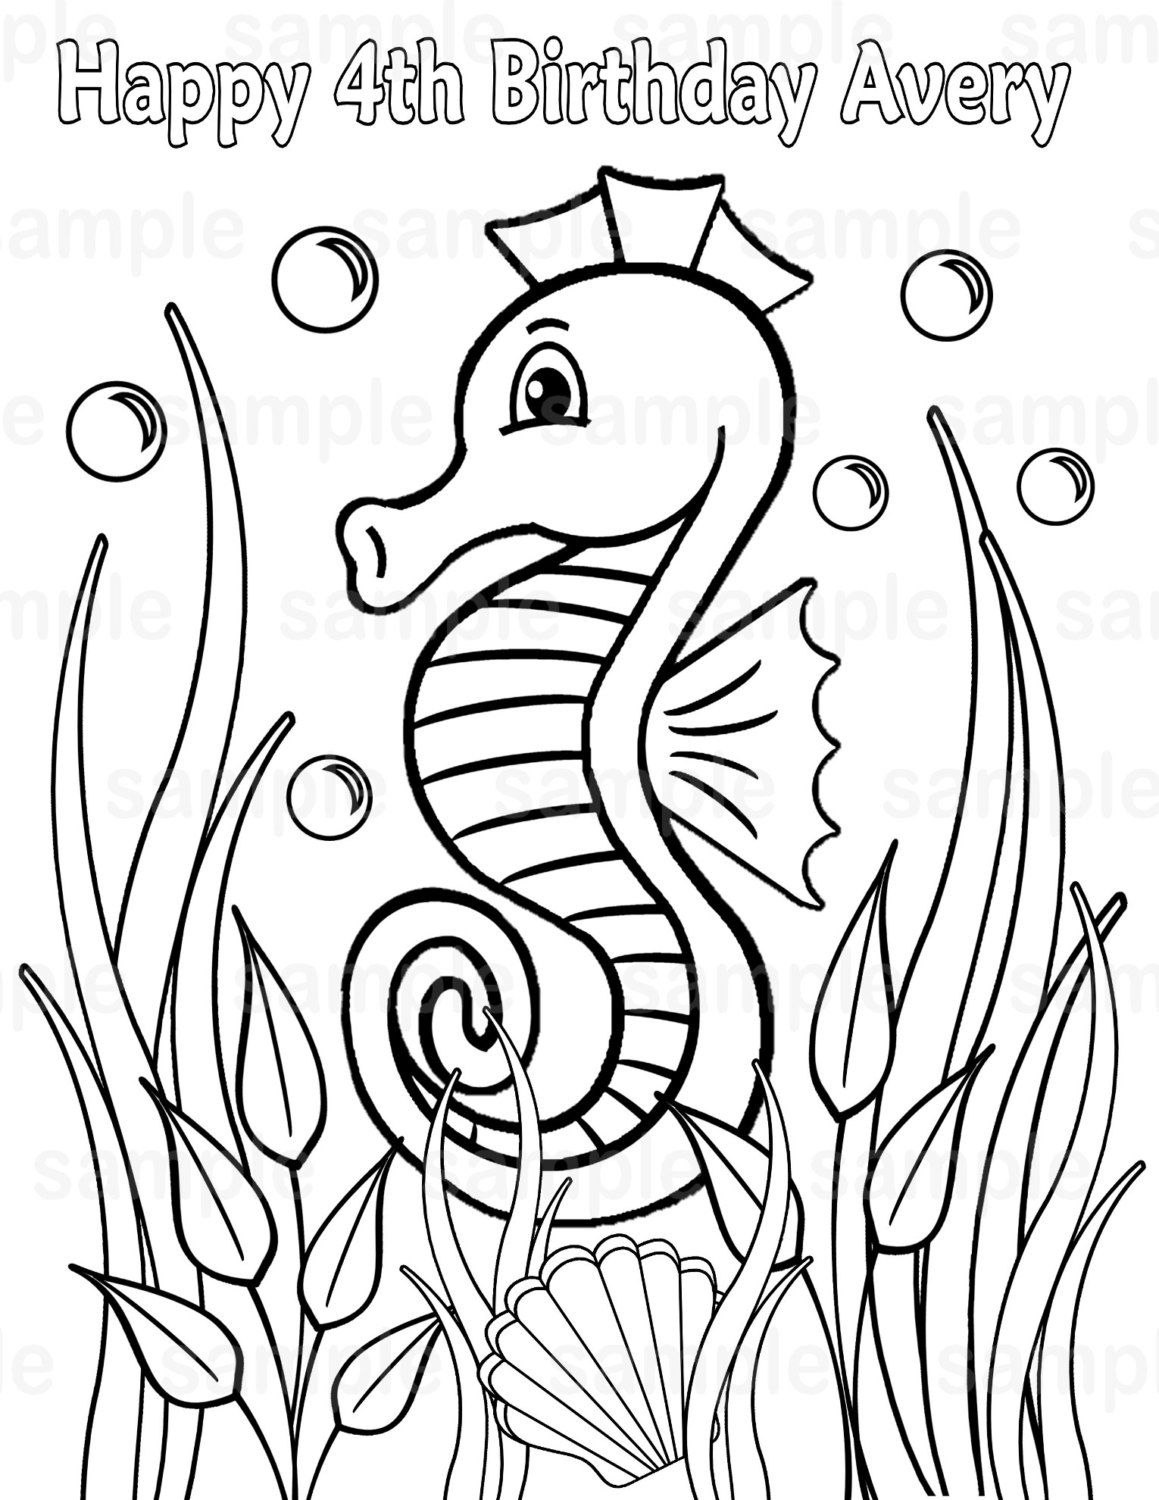 Personalized Printable Sea Horse Under The Seahorse Birthday Party Favor Childrens Kids Coloring Page Activity PDF Or JPEG File